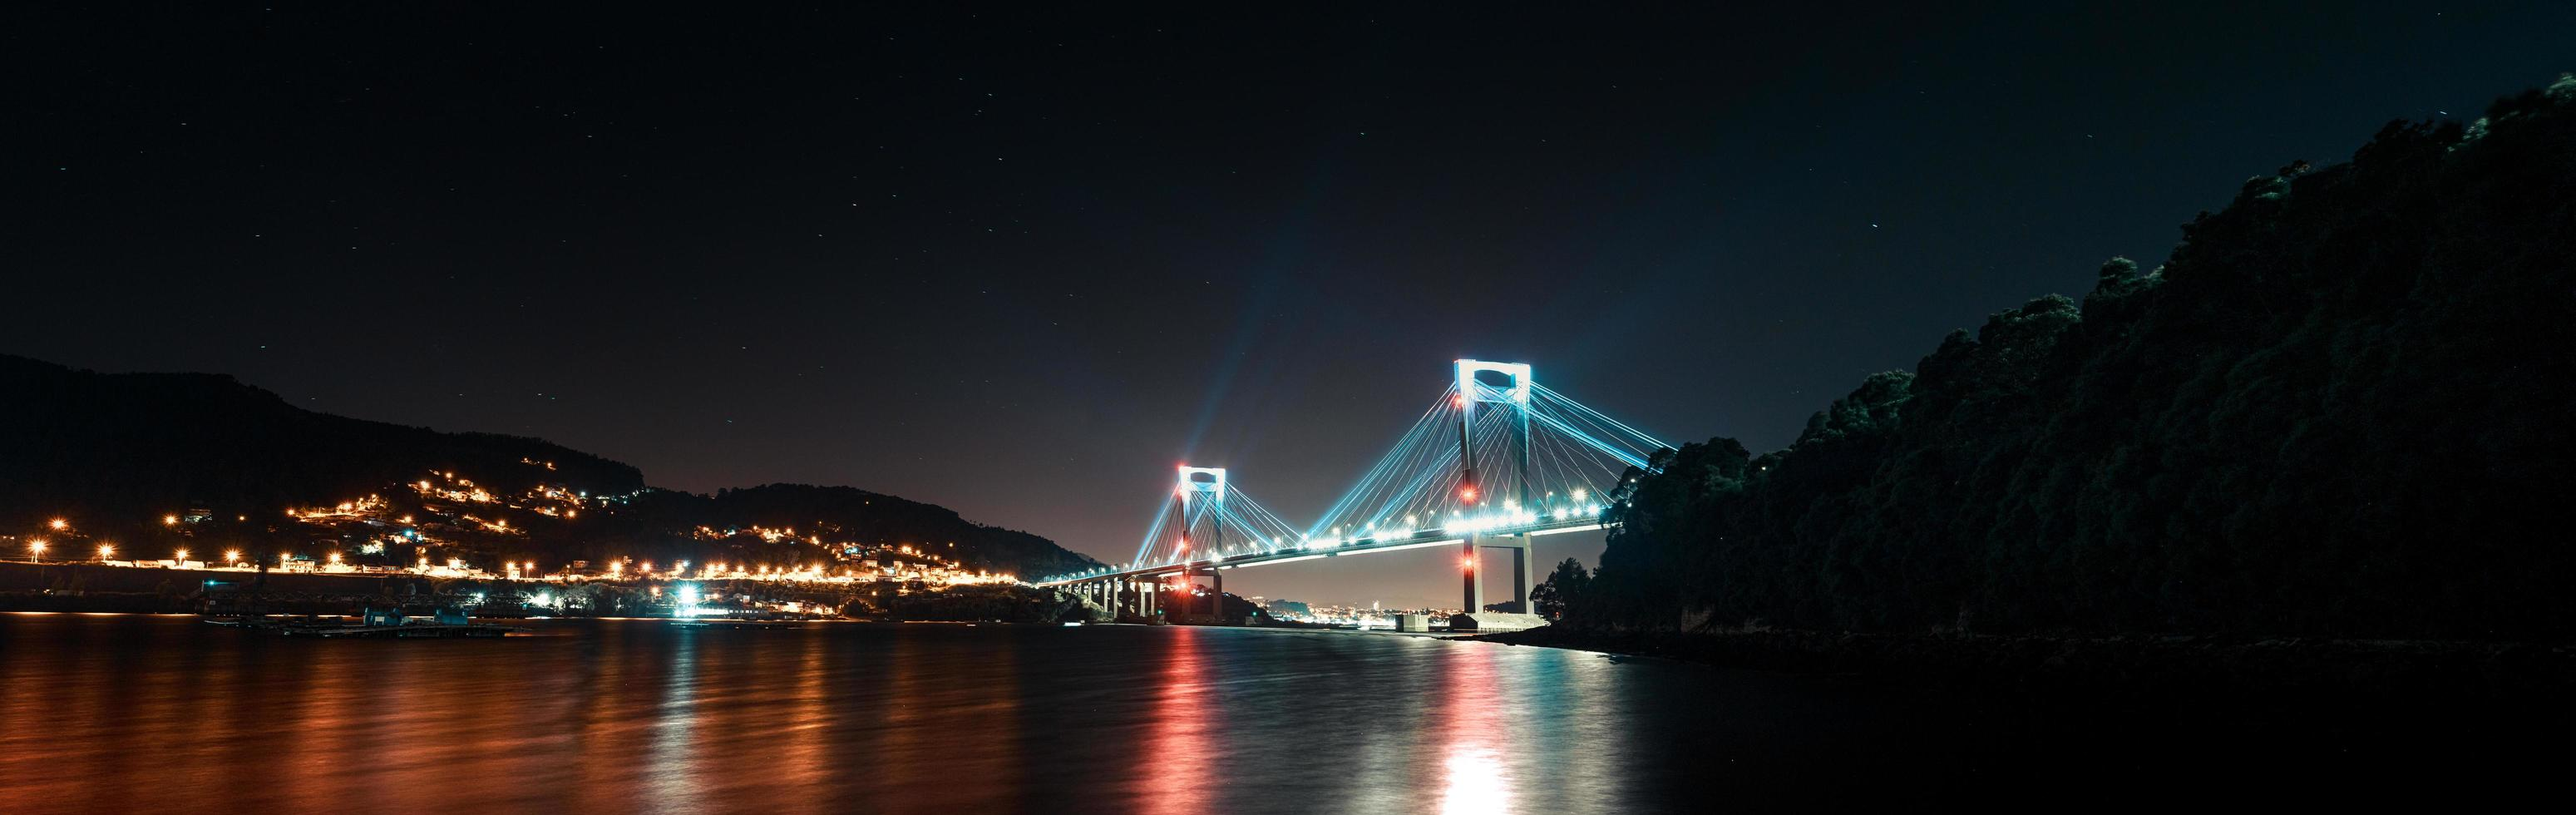 A super panoramic view of a bridge during night photo